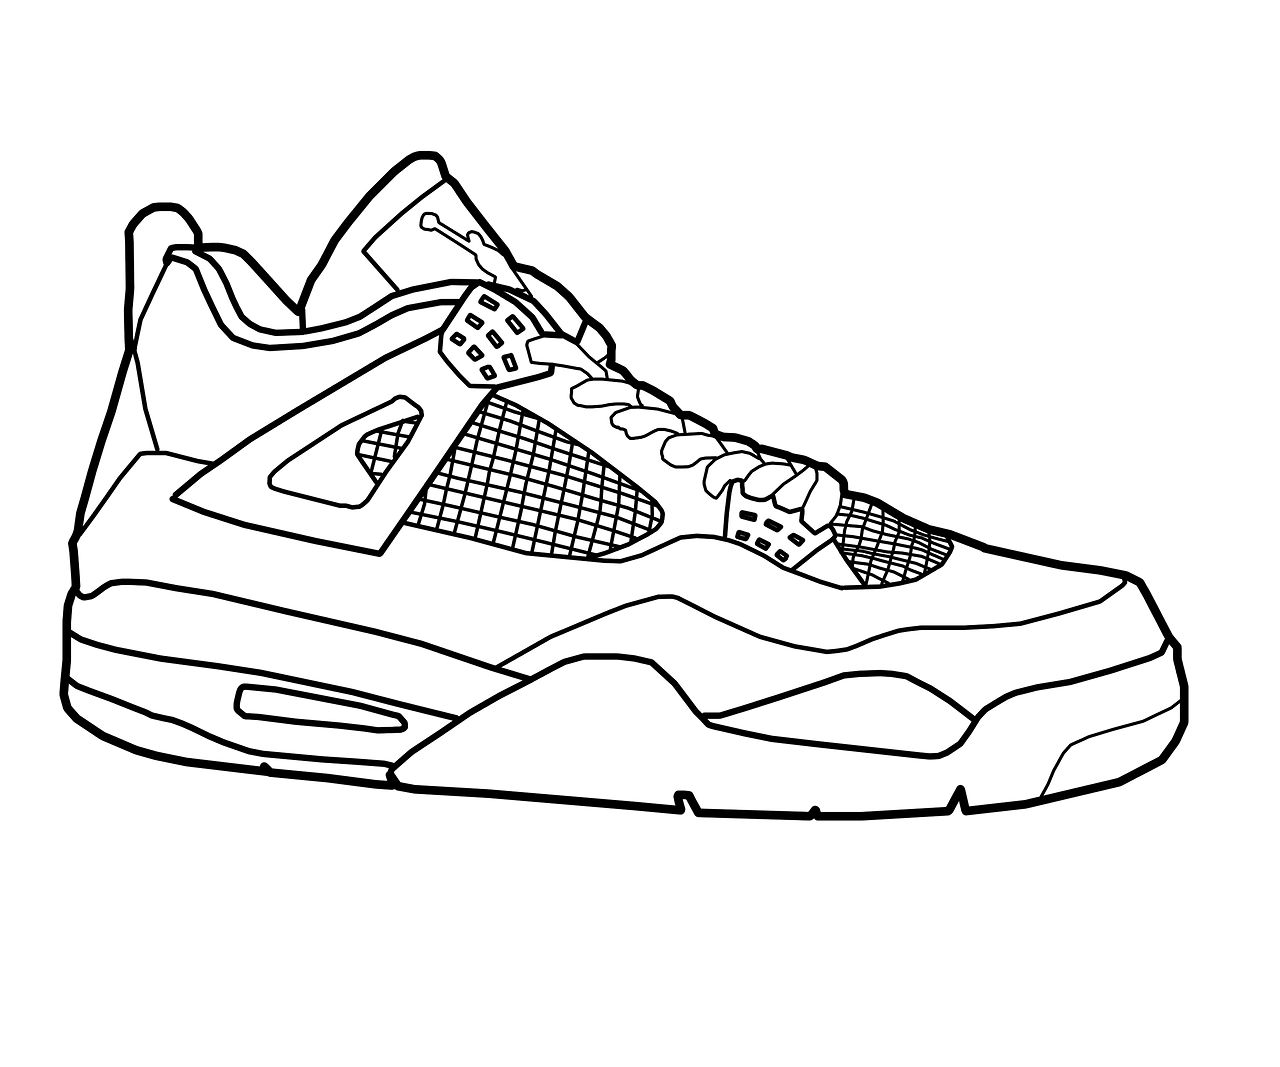 coloring picture shoes basketball shoe coloring pages download and print for free shoes picture coloring